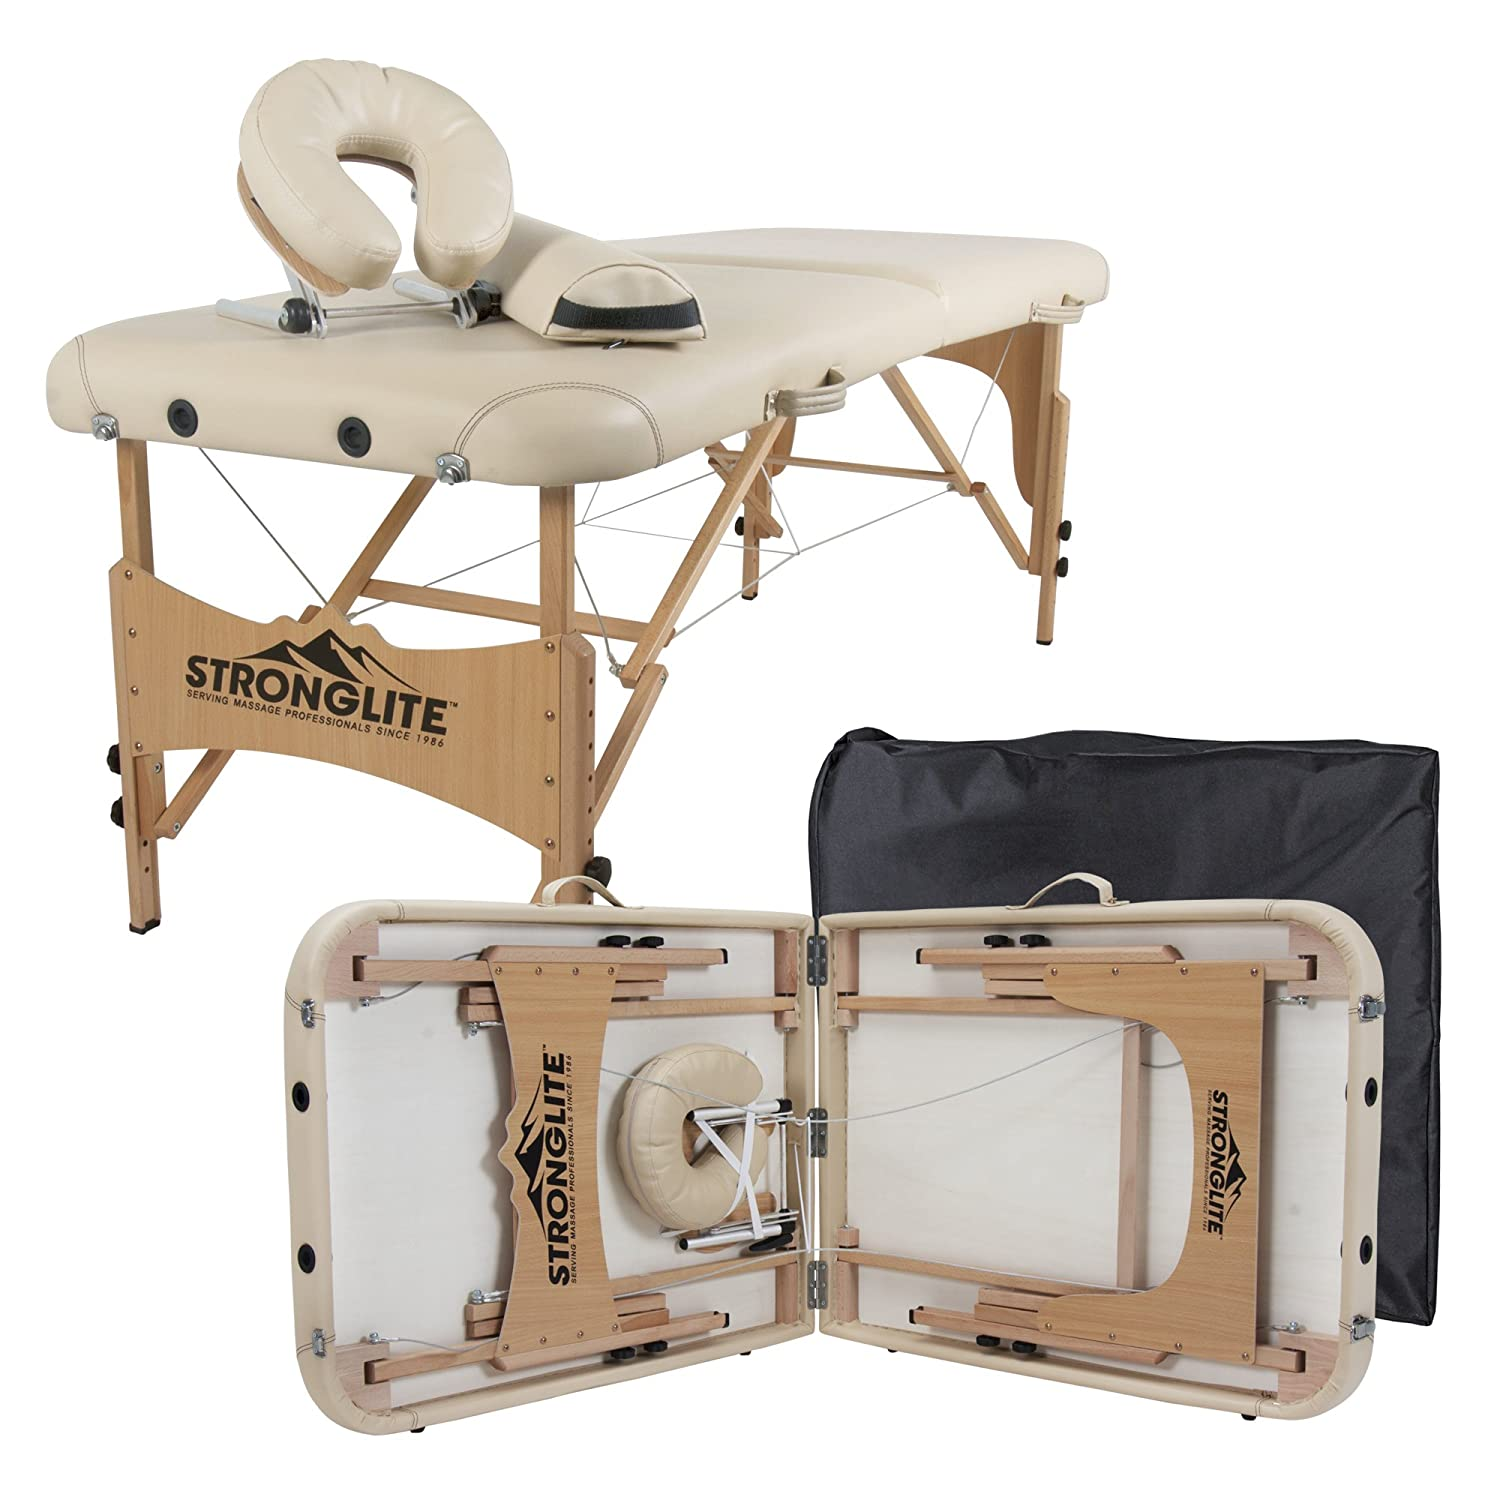 Stronglite Portable Massage Table Package Olympia - All-In-One Treatment Table w/ Adjustable Face Cradle, Pillow, Half Round Bolster & Carrying Case (28x73) 23065